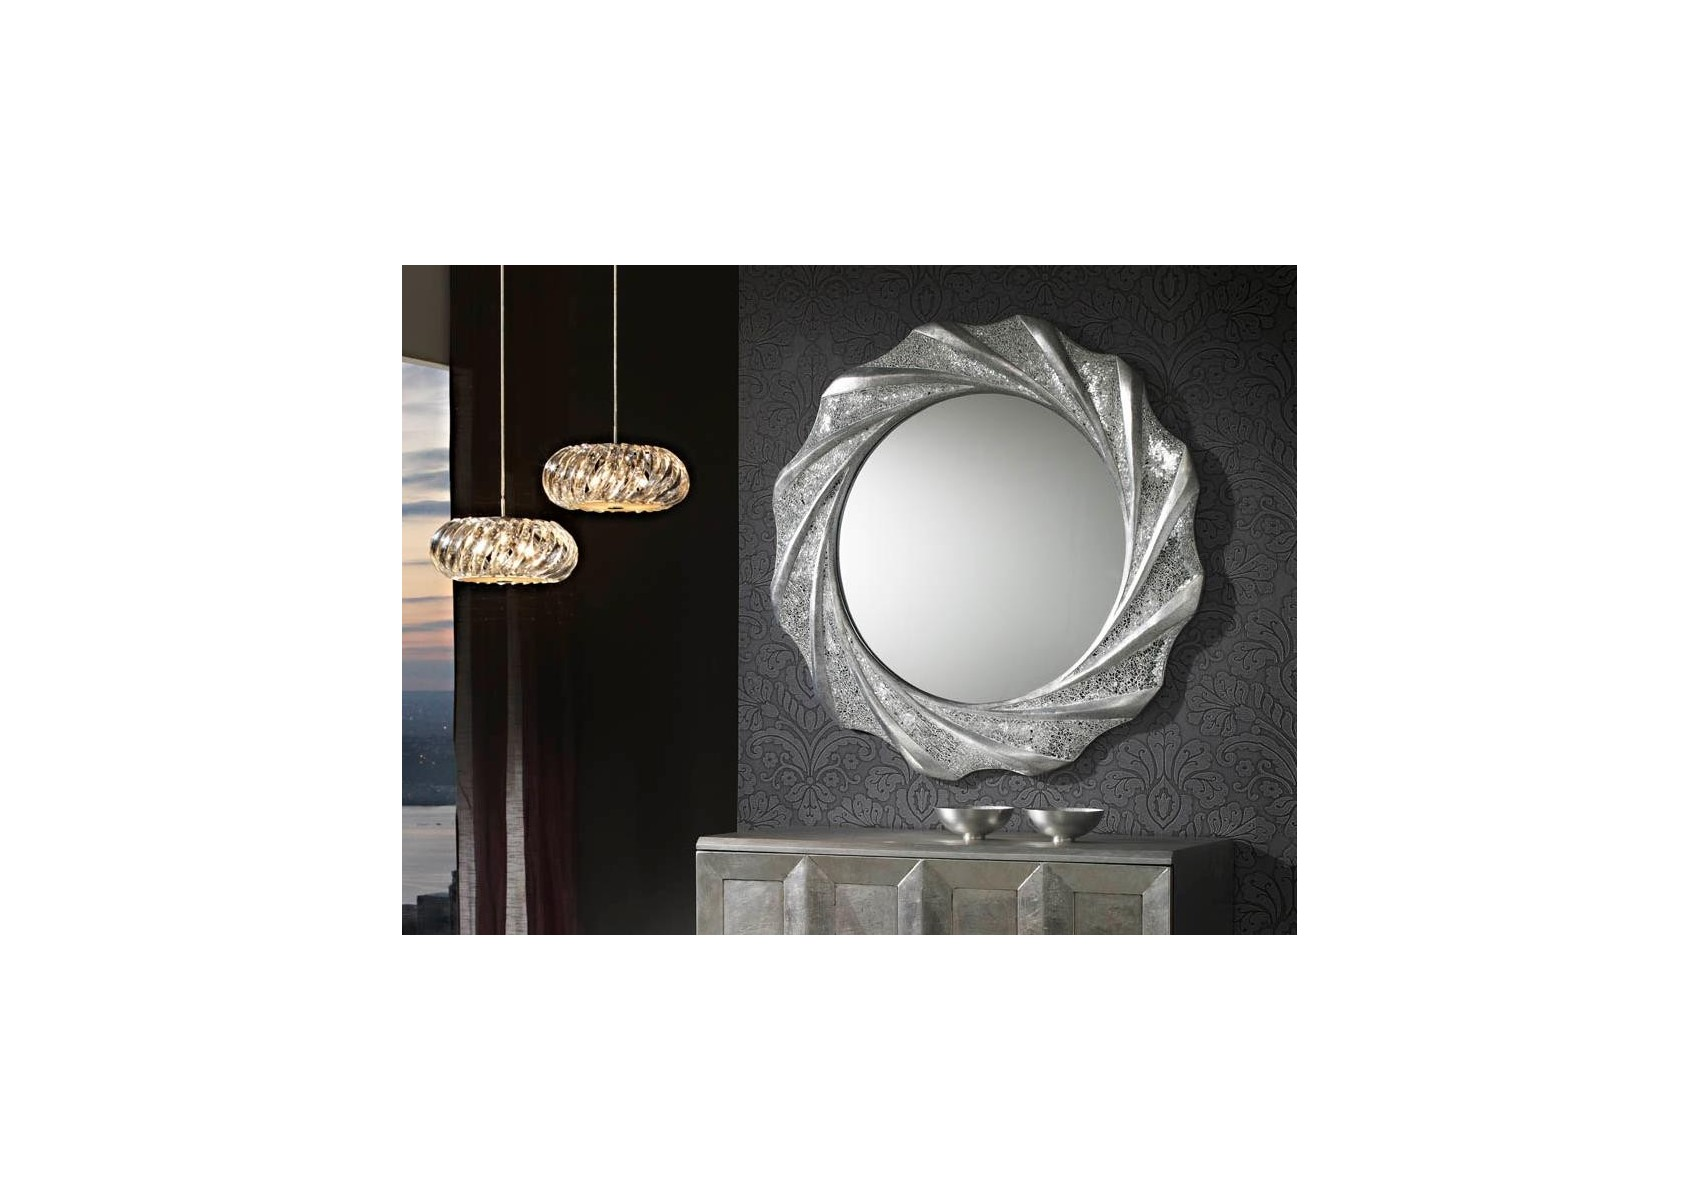 Miroir rond collection gaudi design deco schuller for Miroir rond design